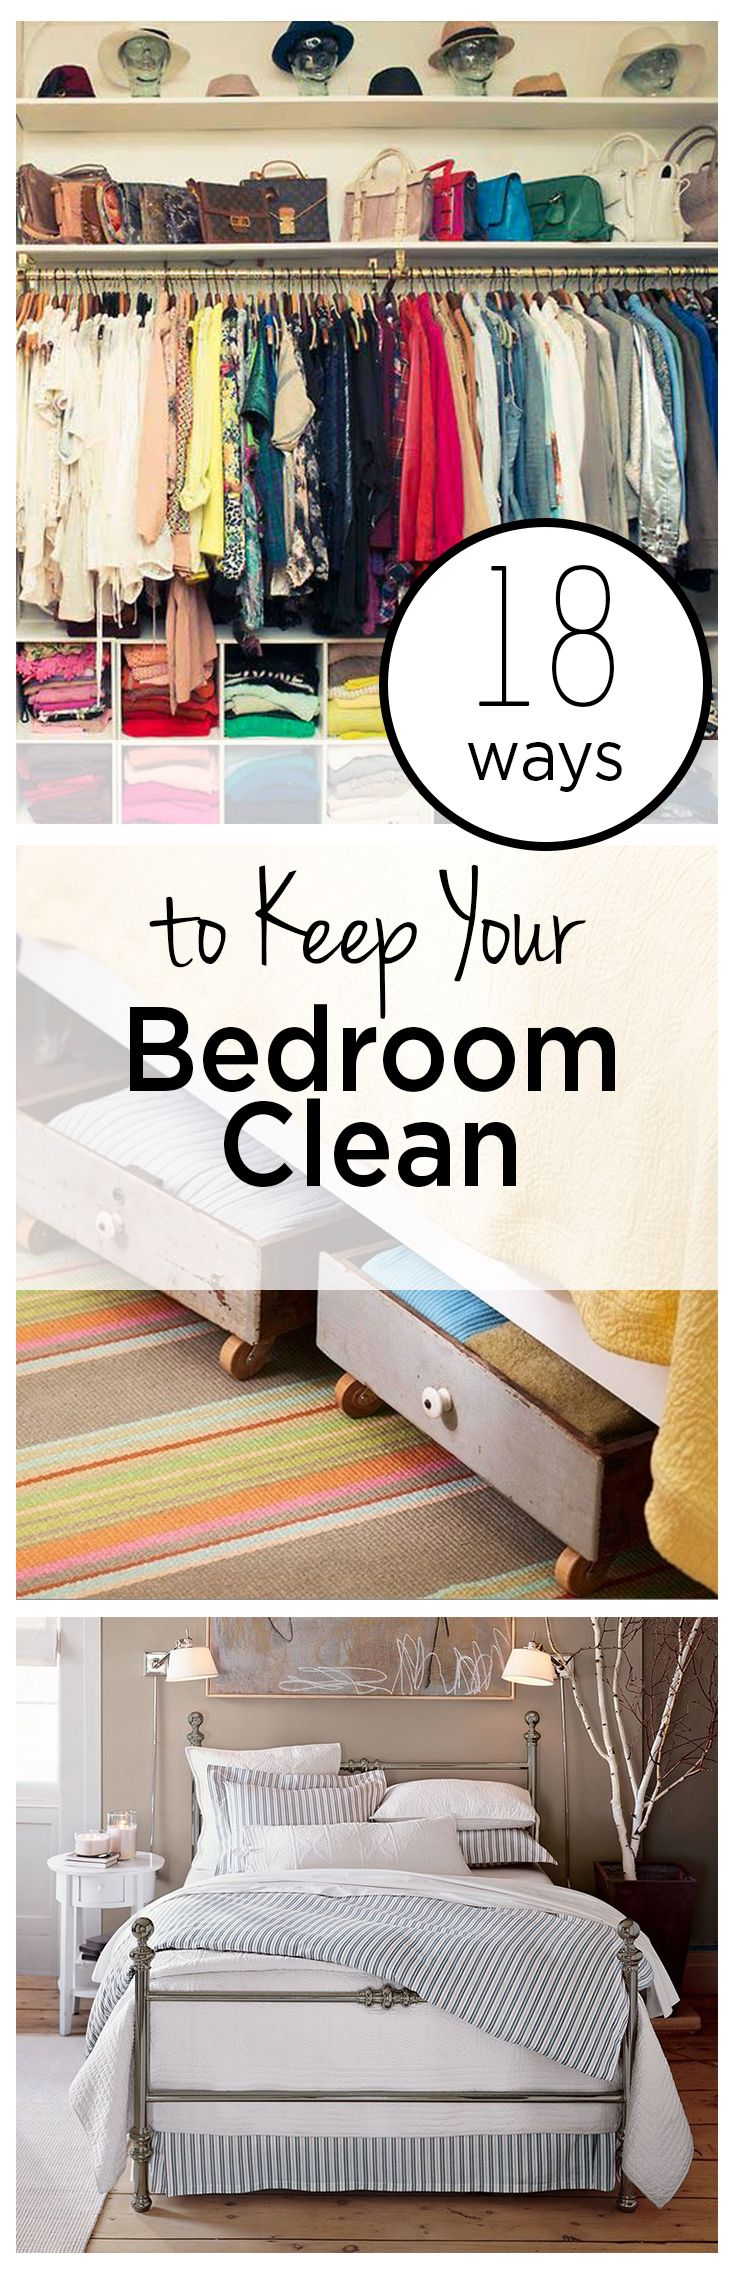 clutter, clutter free living, cleaning, cleaning hacks, popular pin, cleaning tips, cleaning hacks.